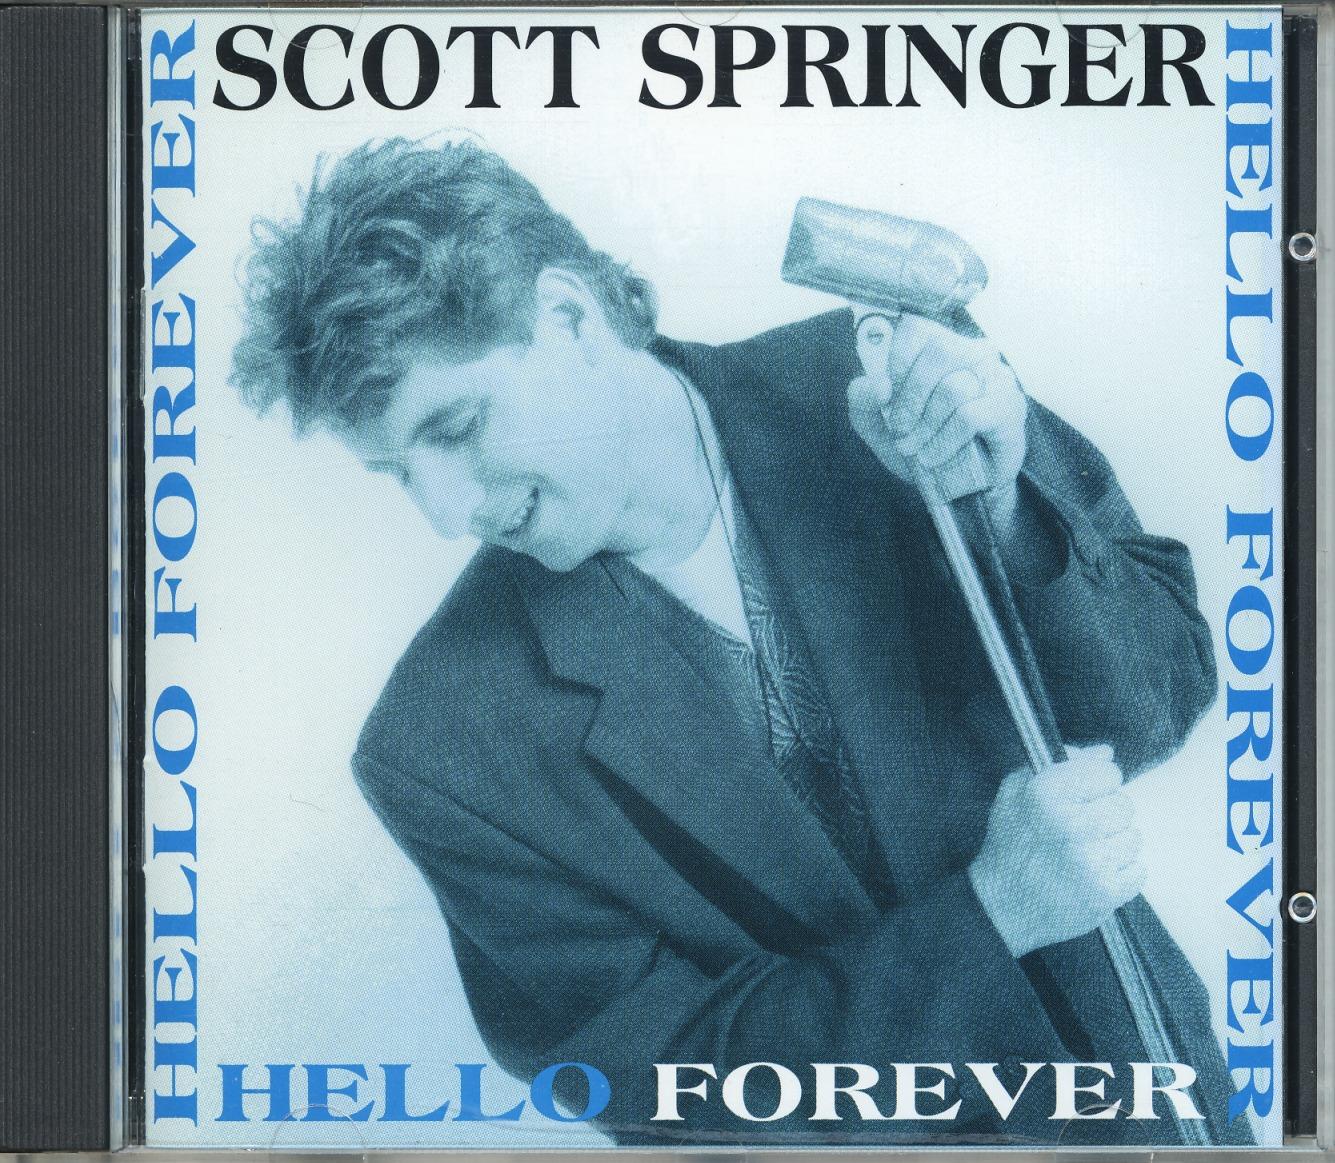 SCOTT SPRINGER/HELLO FOREVER (USED)